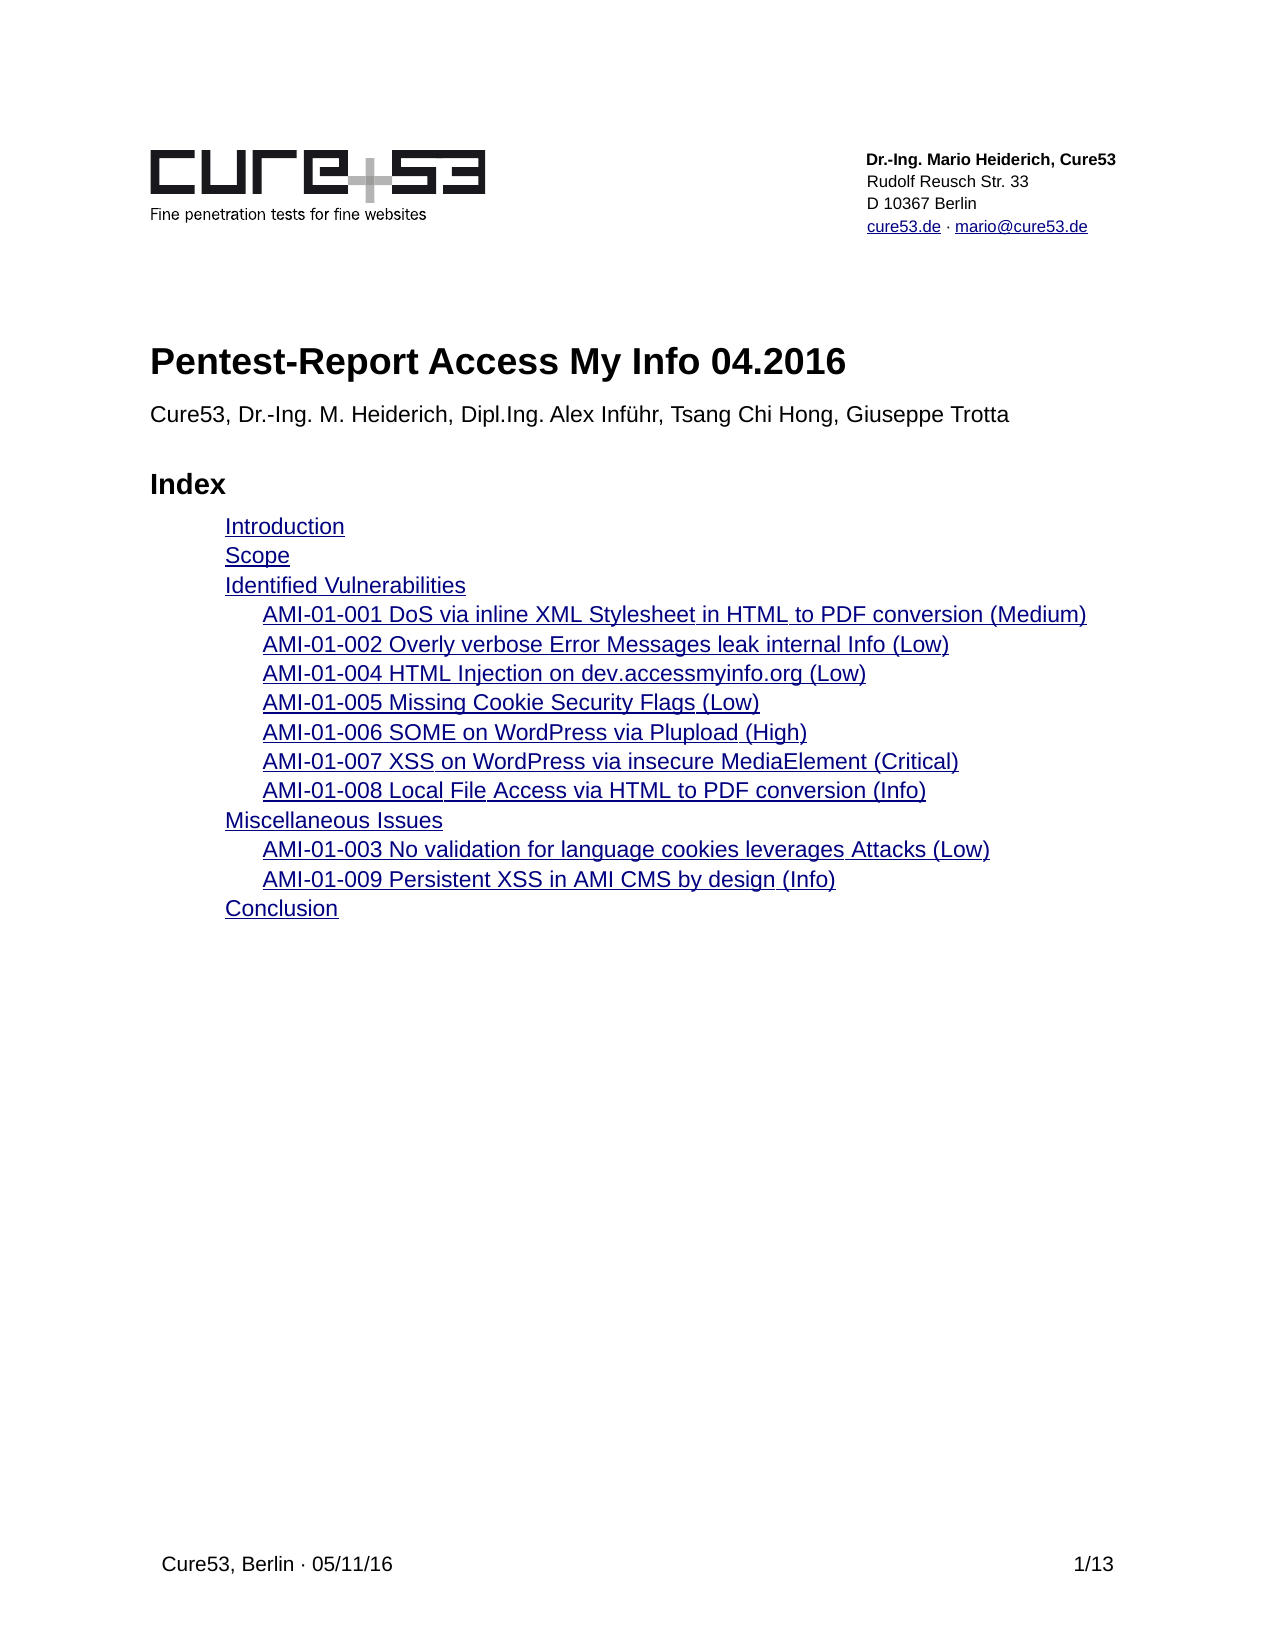 First page of the 'pentest-report accessmyinfo' PDF